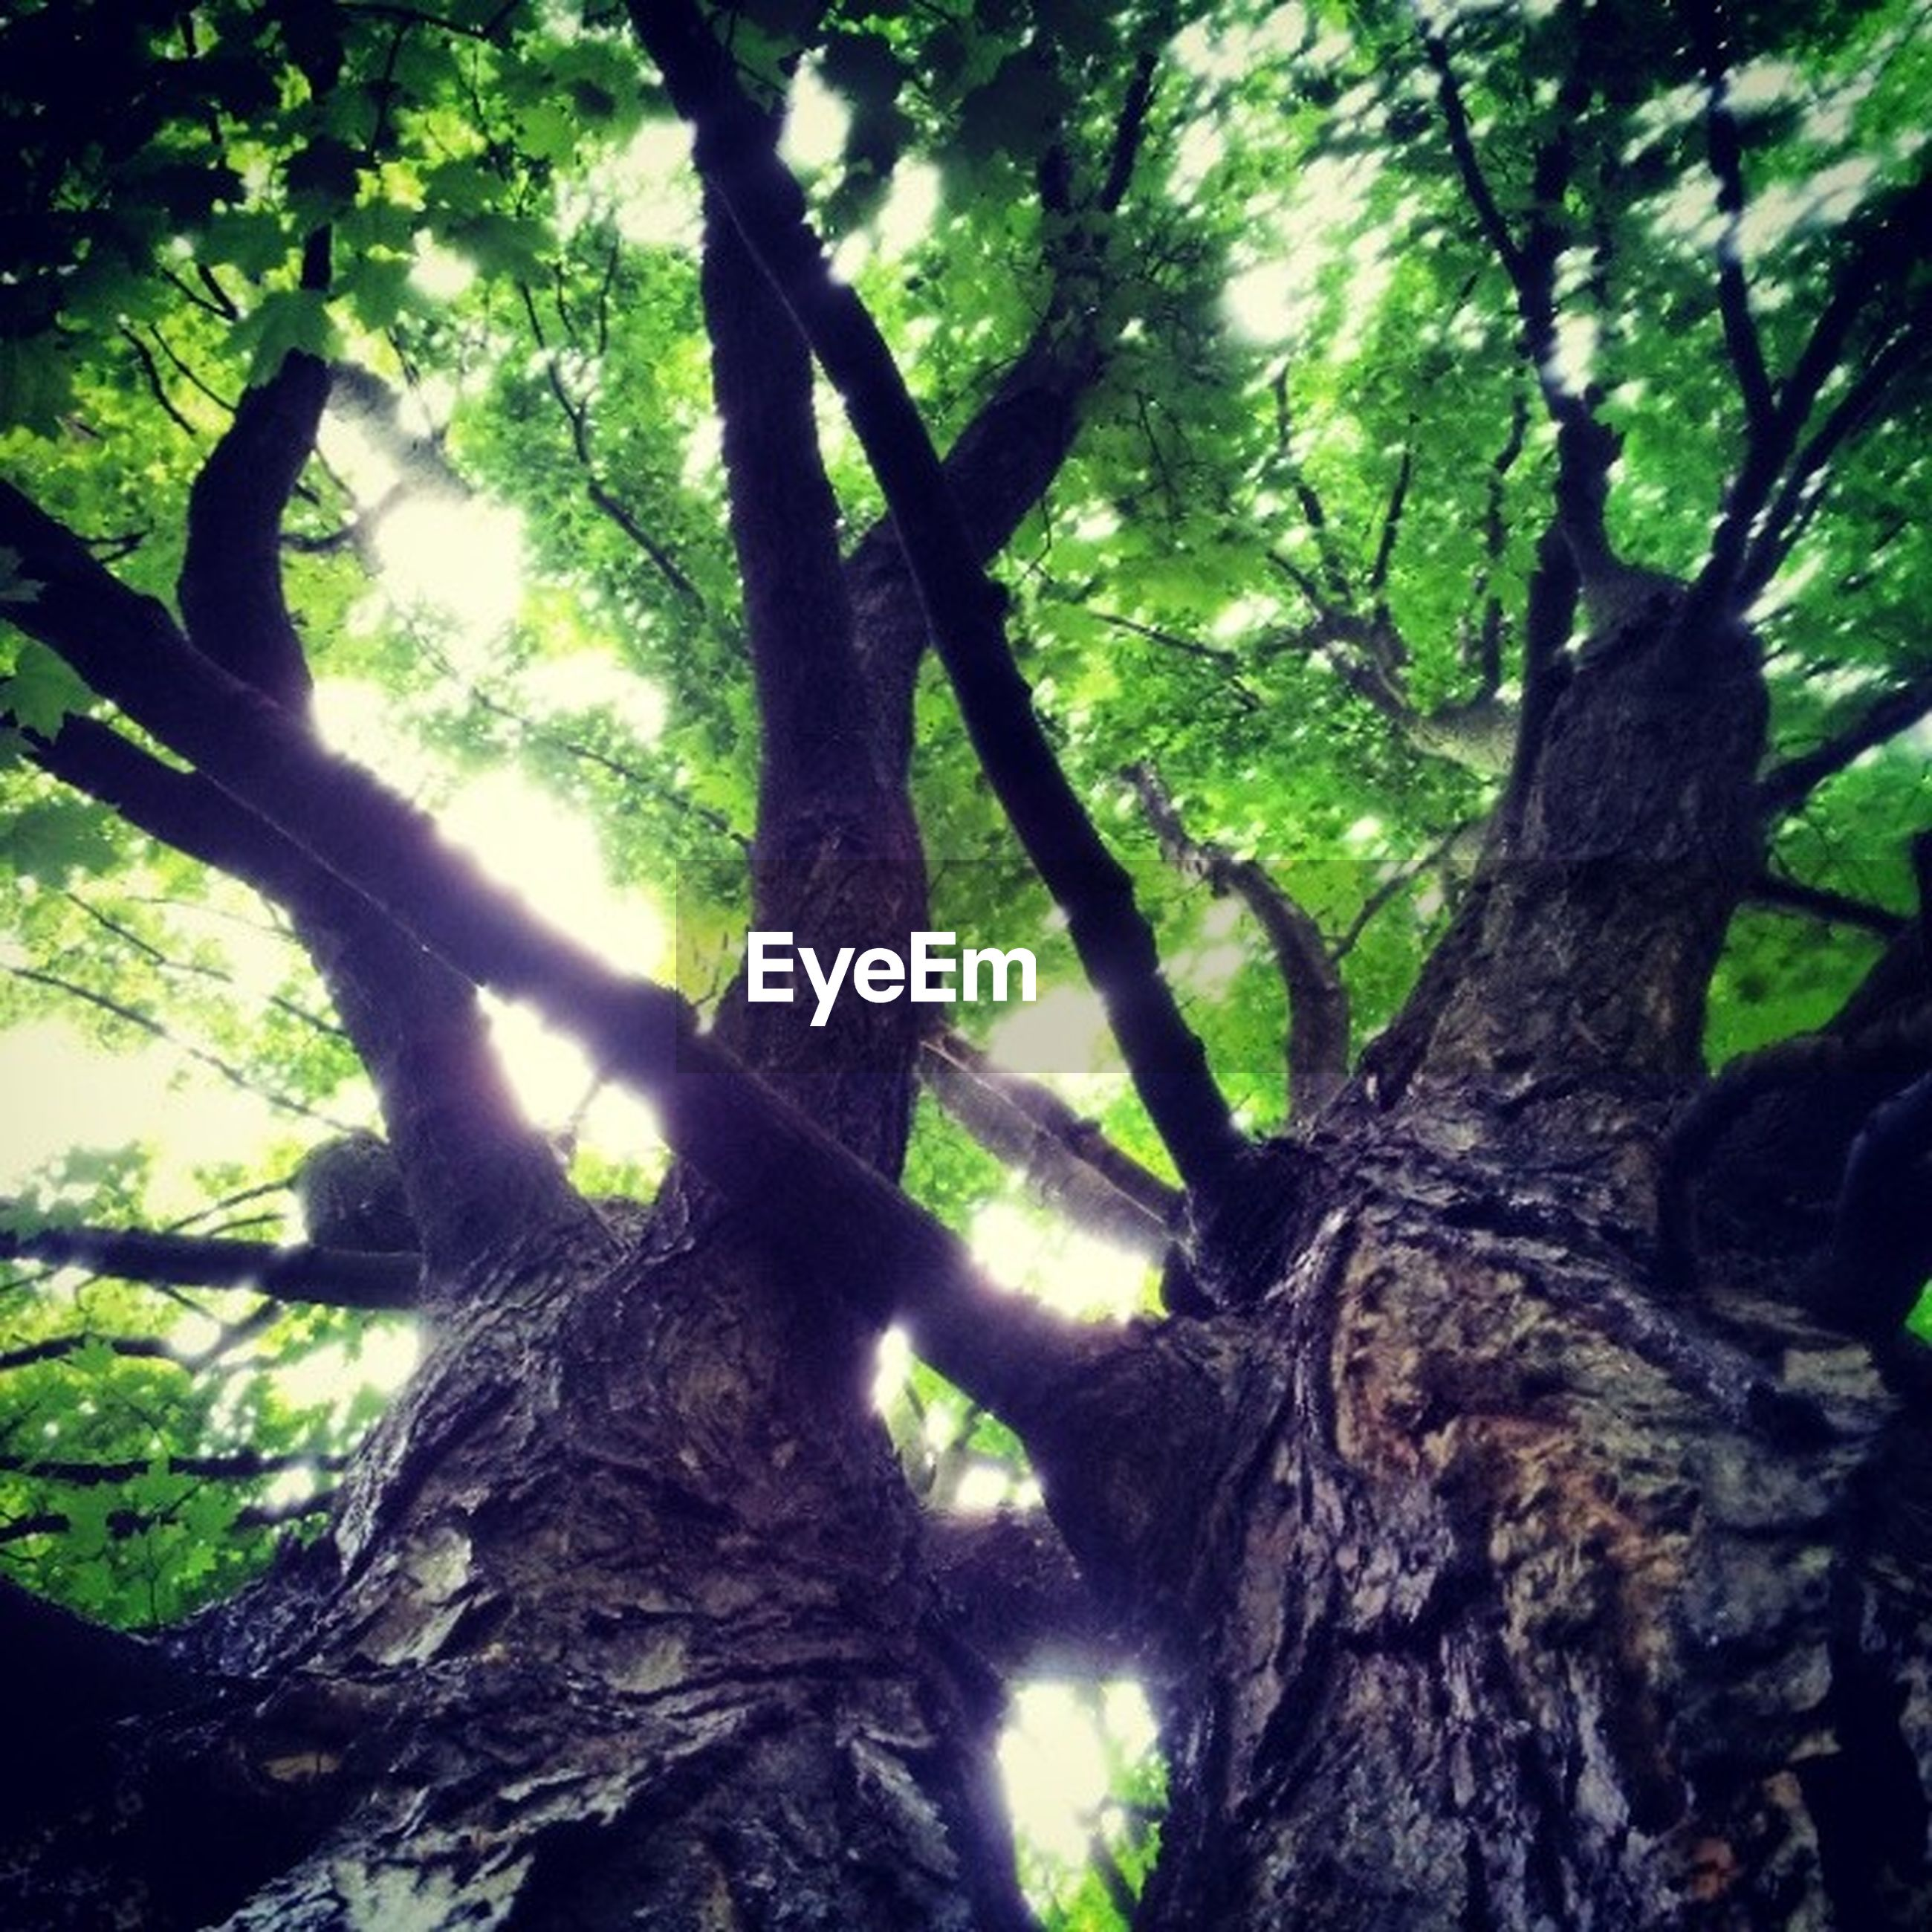 tree, tree trunk, growth, low angle view, branch, forest, nature, tranquility, bark, textured, green color, beauty in nature, close-up, day, outdoors, woodland, no people, moss, rough, focus on foreground